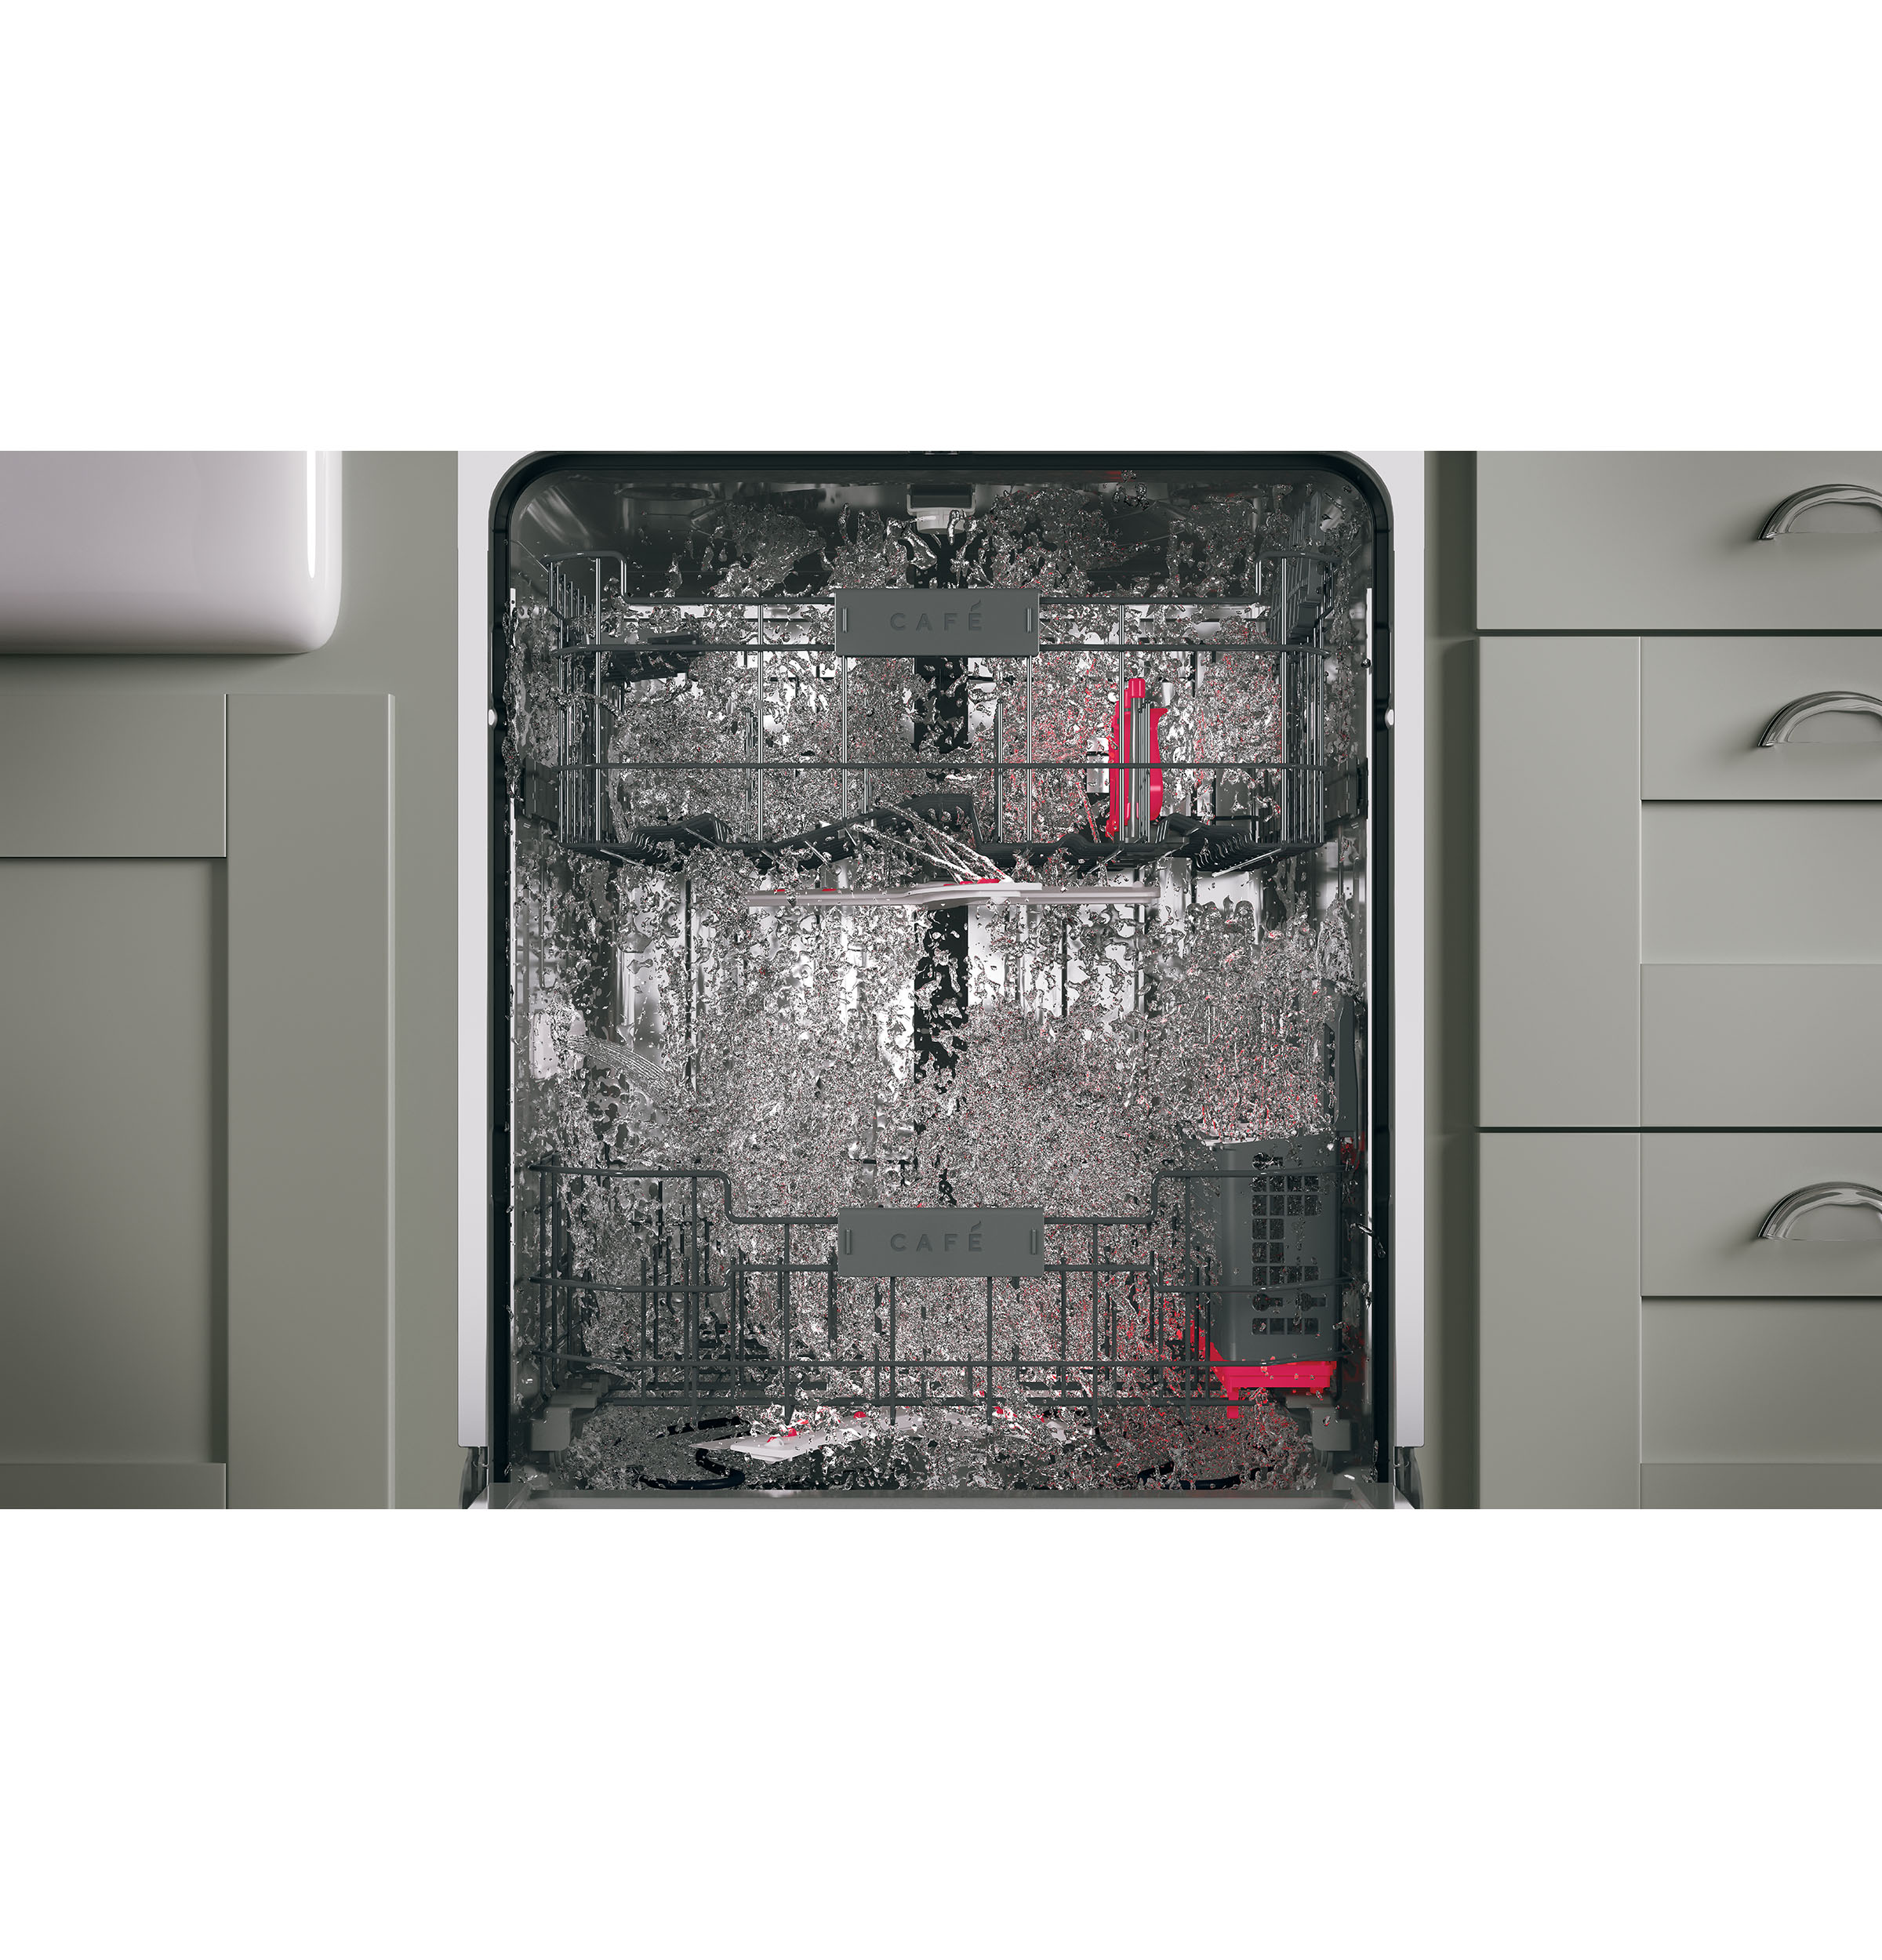 Model: CDT836P2MS1 | GE Café™ Series Stainless Interior Built-In Dishwasher with Hidden Controls